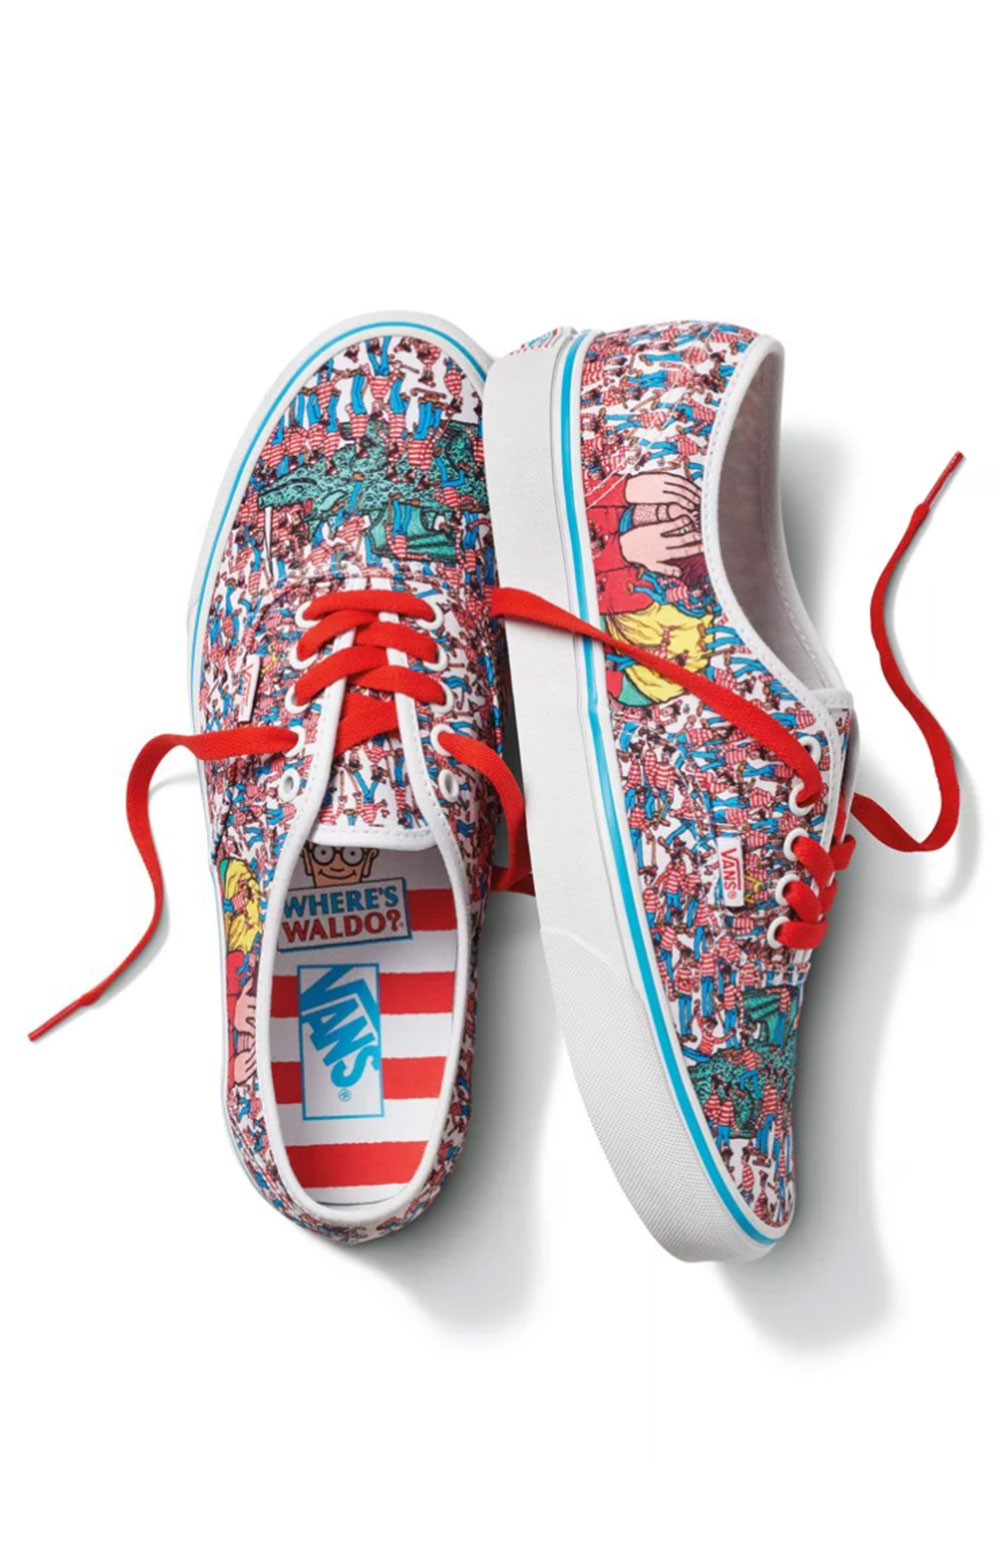 (48A3RZ) Authentic Shoes - Land Of Waldos 2